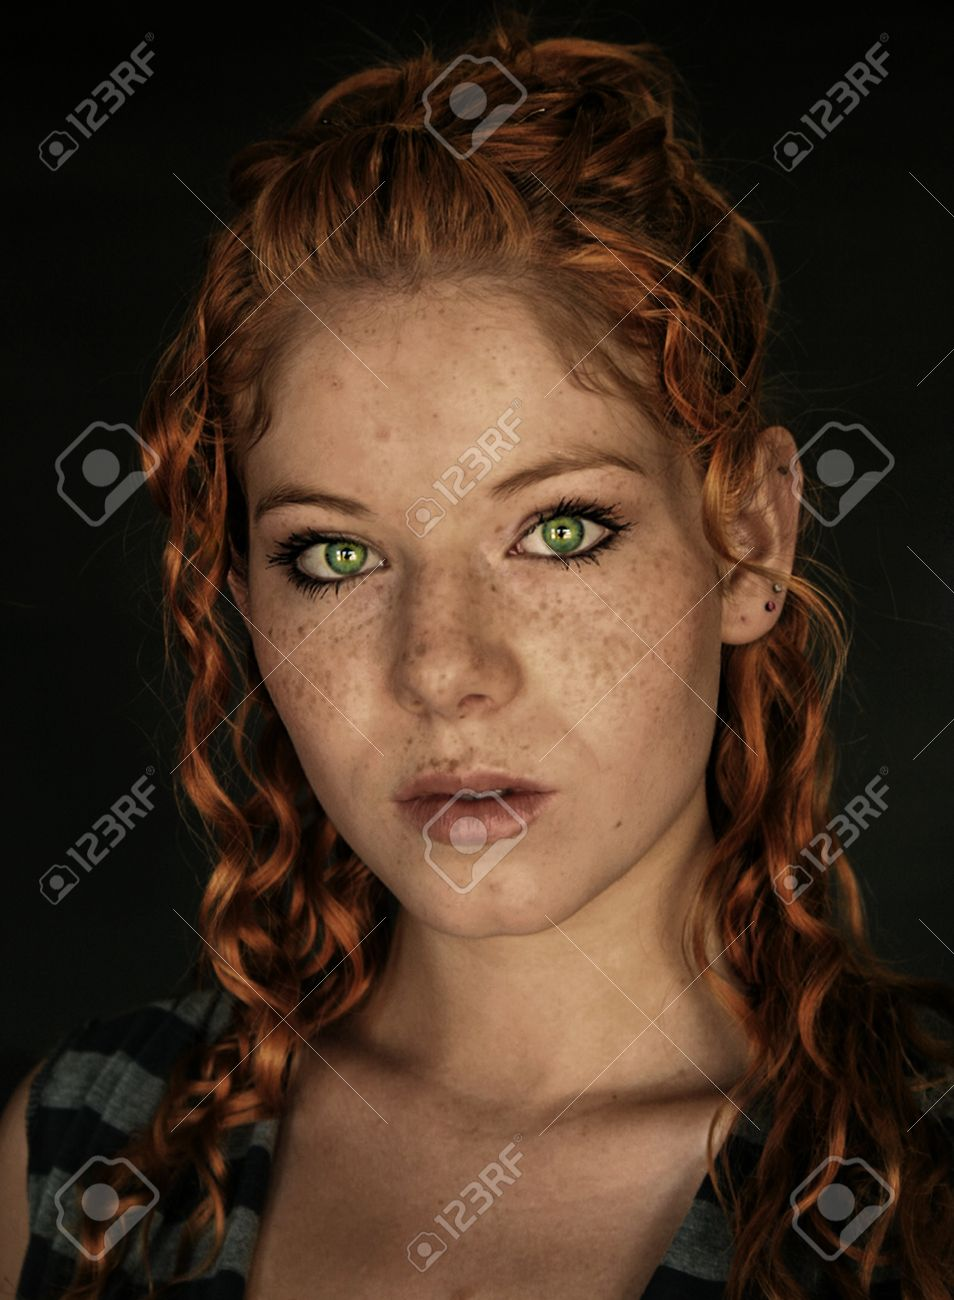 A freckled young woman with copper red hair, and vibrant green eyes. - 19293137